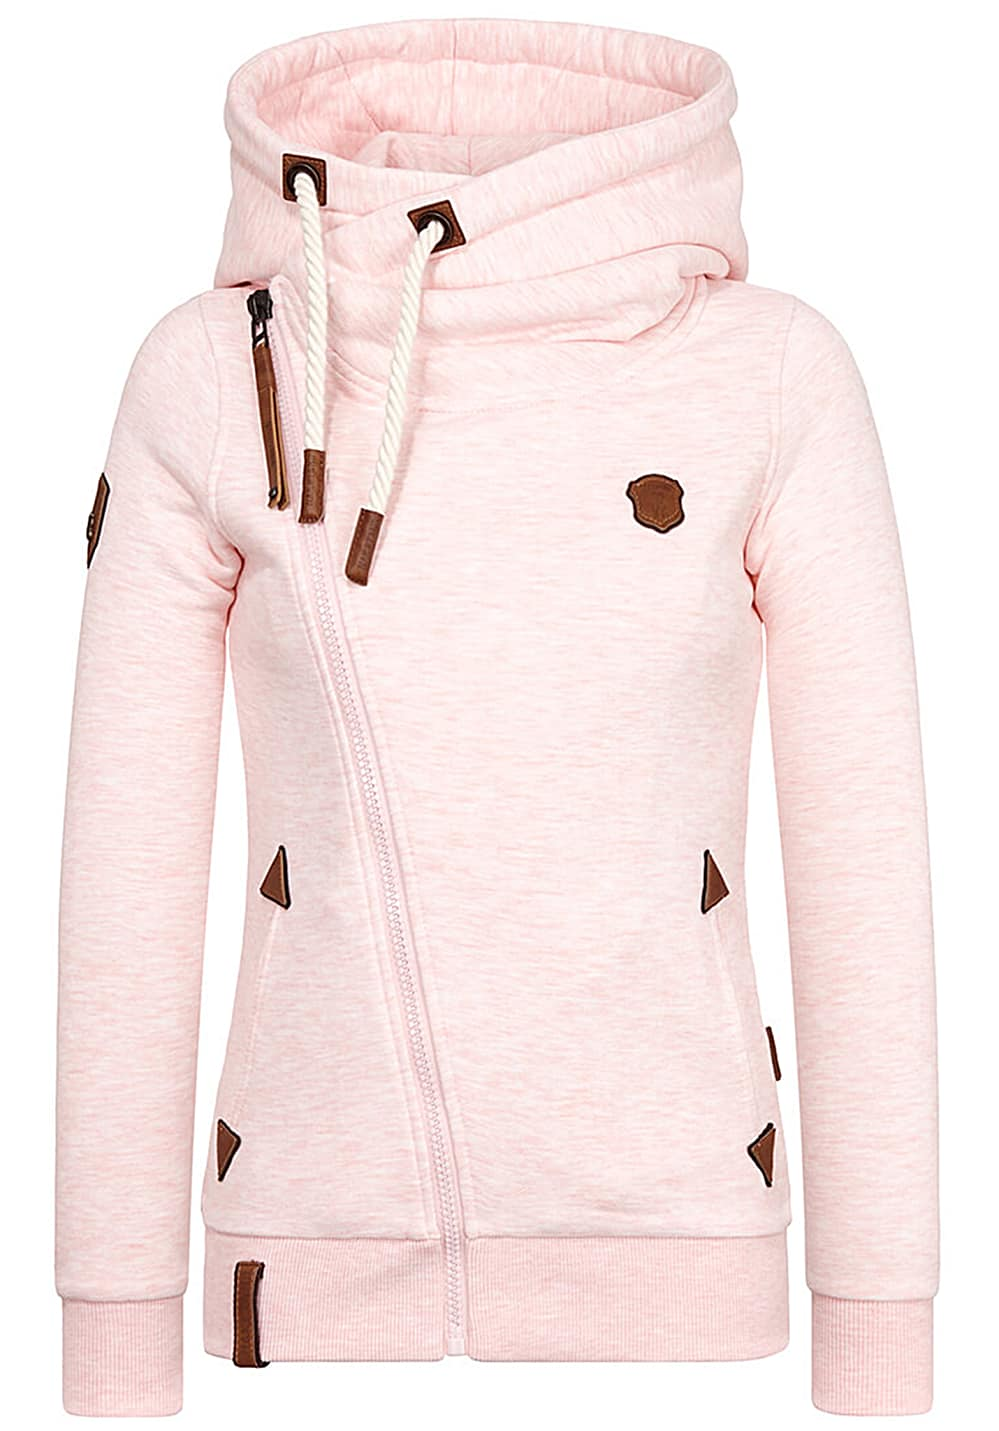 NAKETANO Family Biz Hooded Jacket for Women Pink